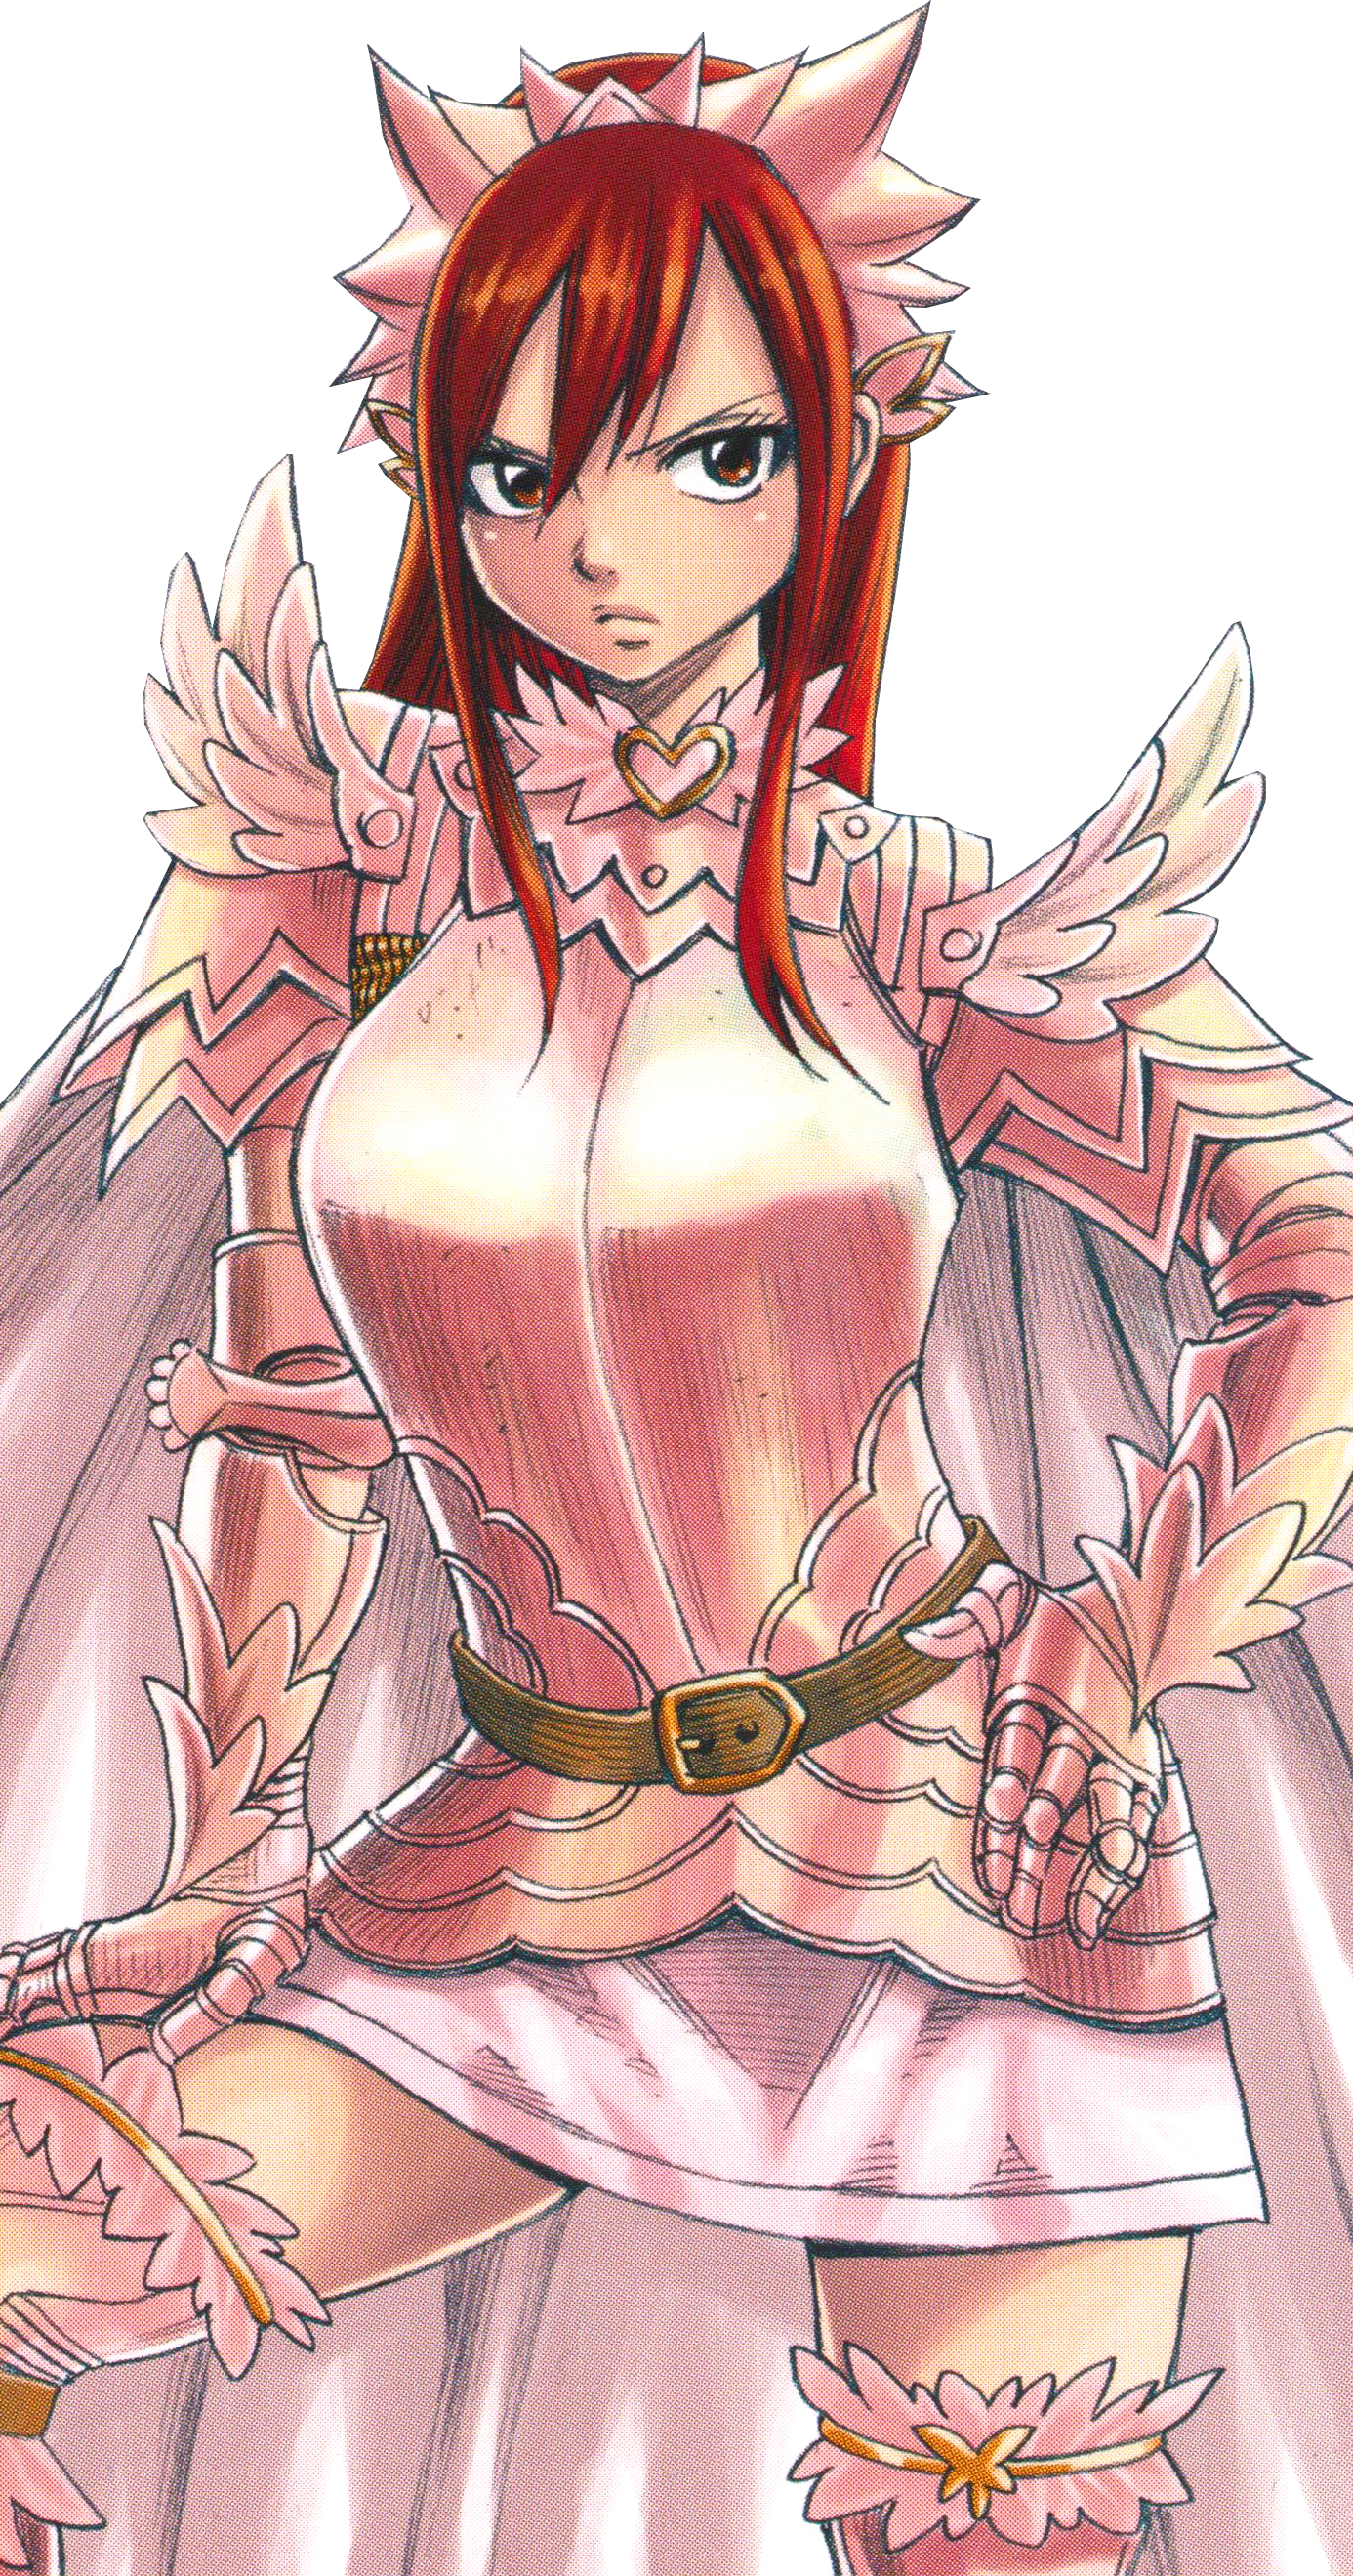 Fairy Tail Erza Scarlet Png By Bloomsama On Deviantart Fairy Tail Erza Scarlet Erza Scarlet Fairy Tail